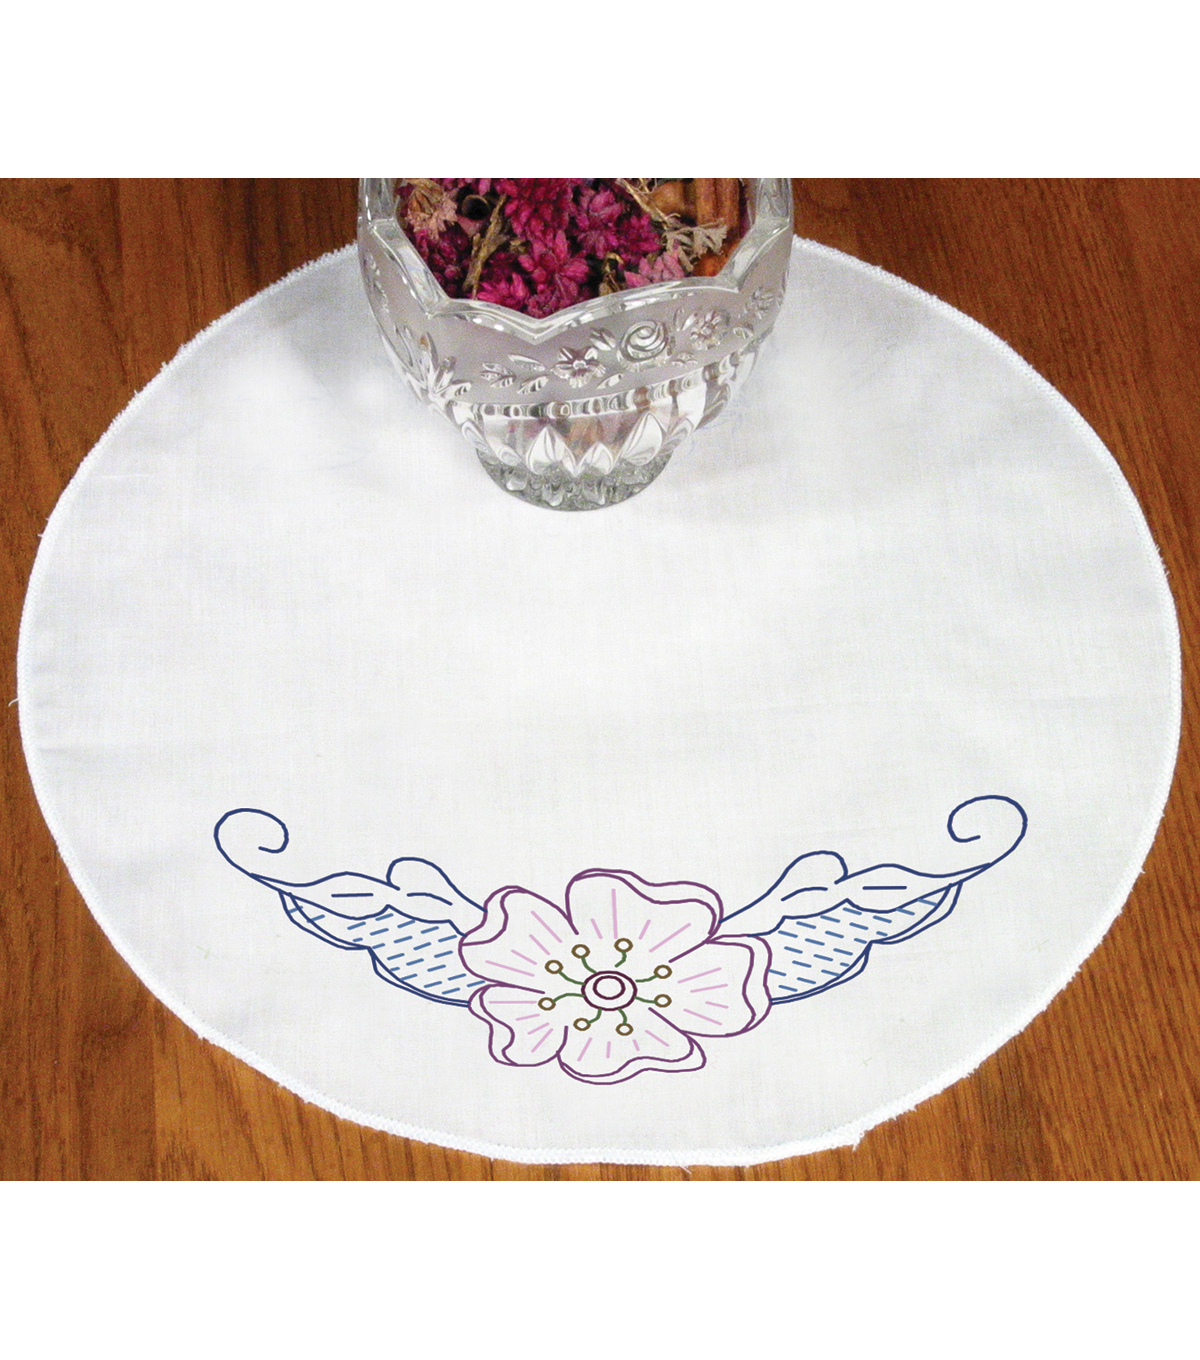 Fairway Stamped Round Doily Floral